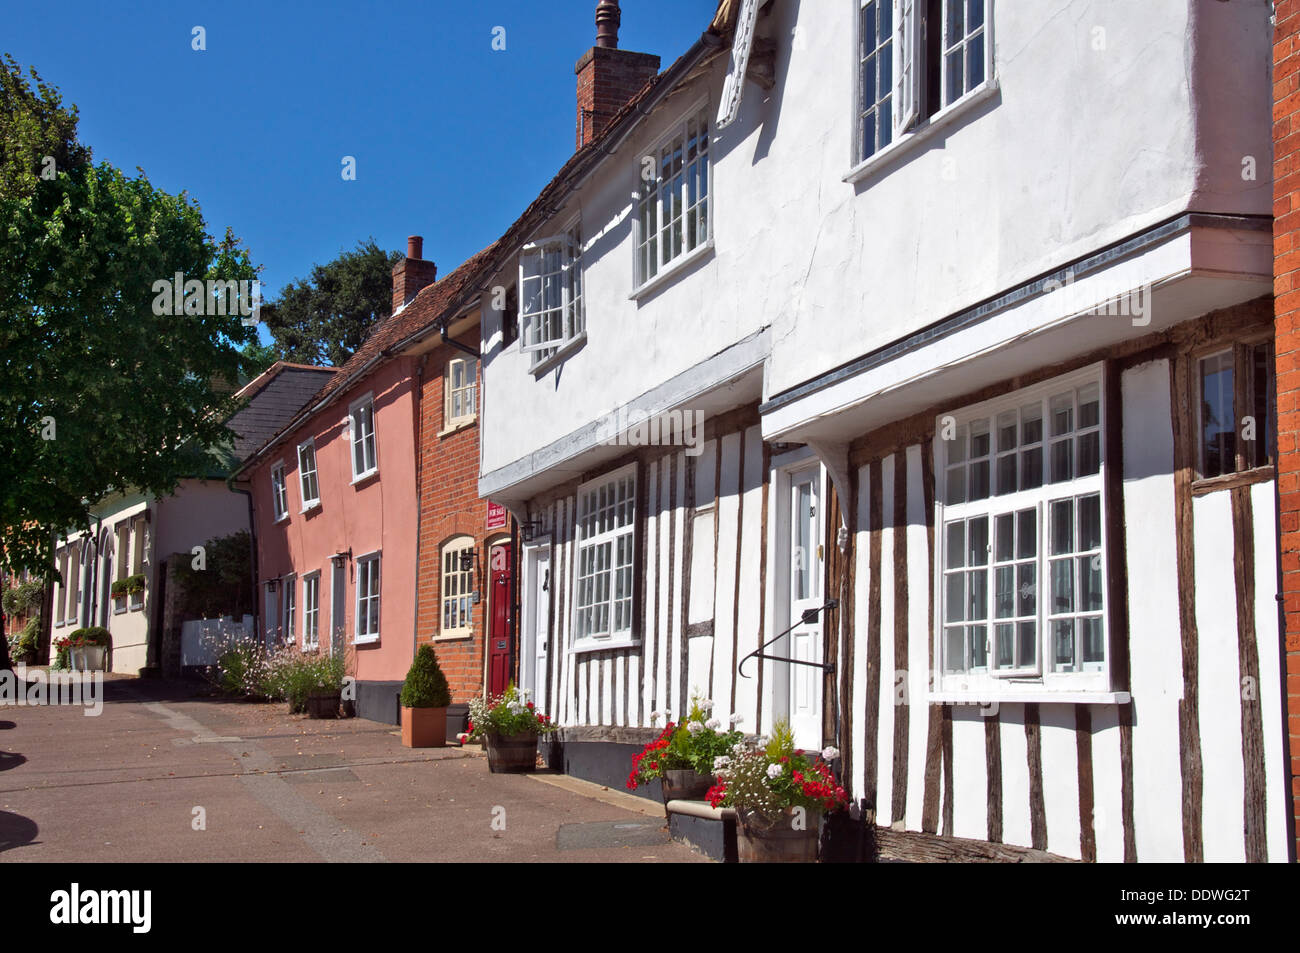 Row of old houses Lavenham Suffolk England - Stock Image